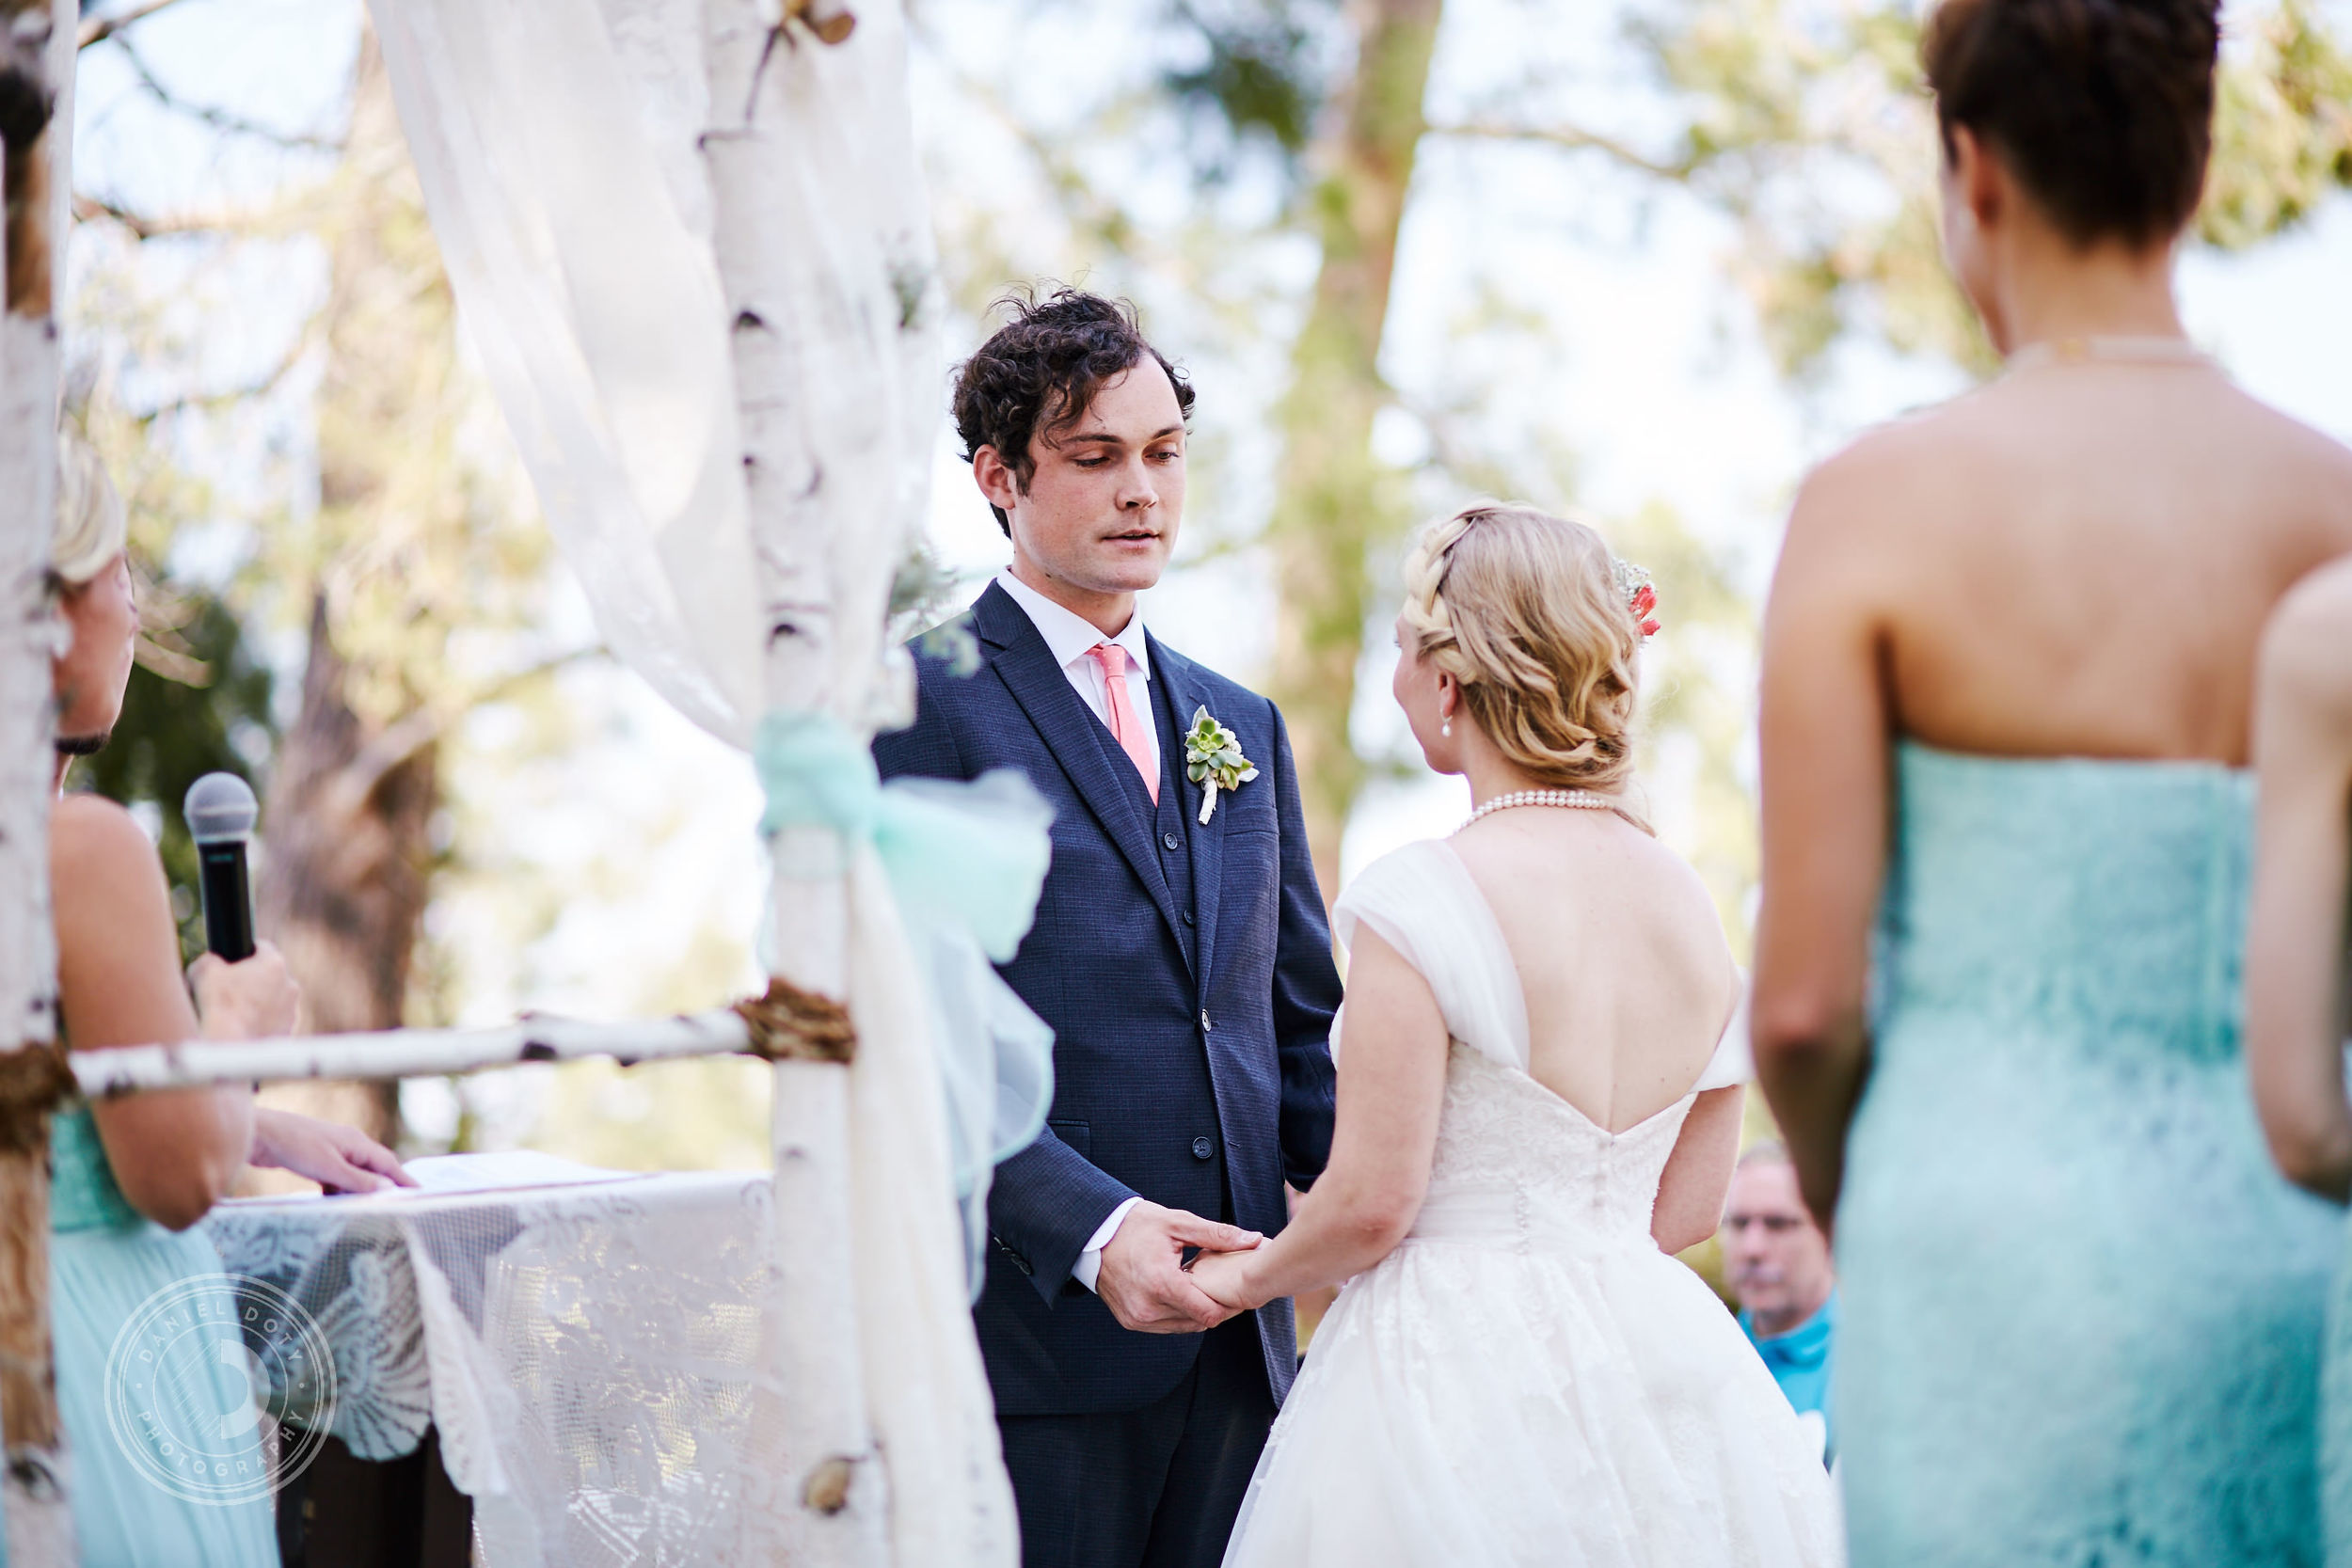 Daniel Doty Photography Erin Colin SoCal Wedding Photographer Strathearn 141.jpg